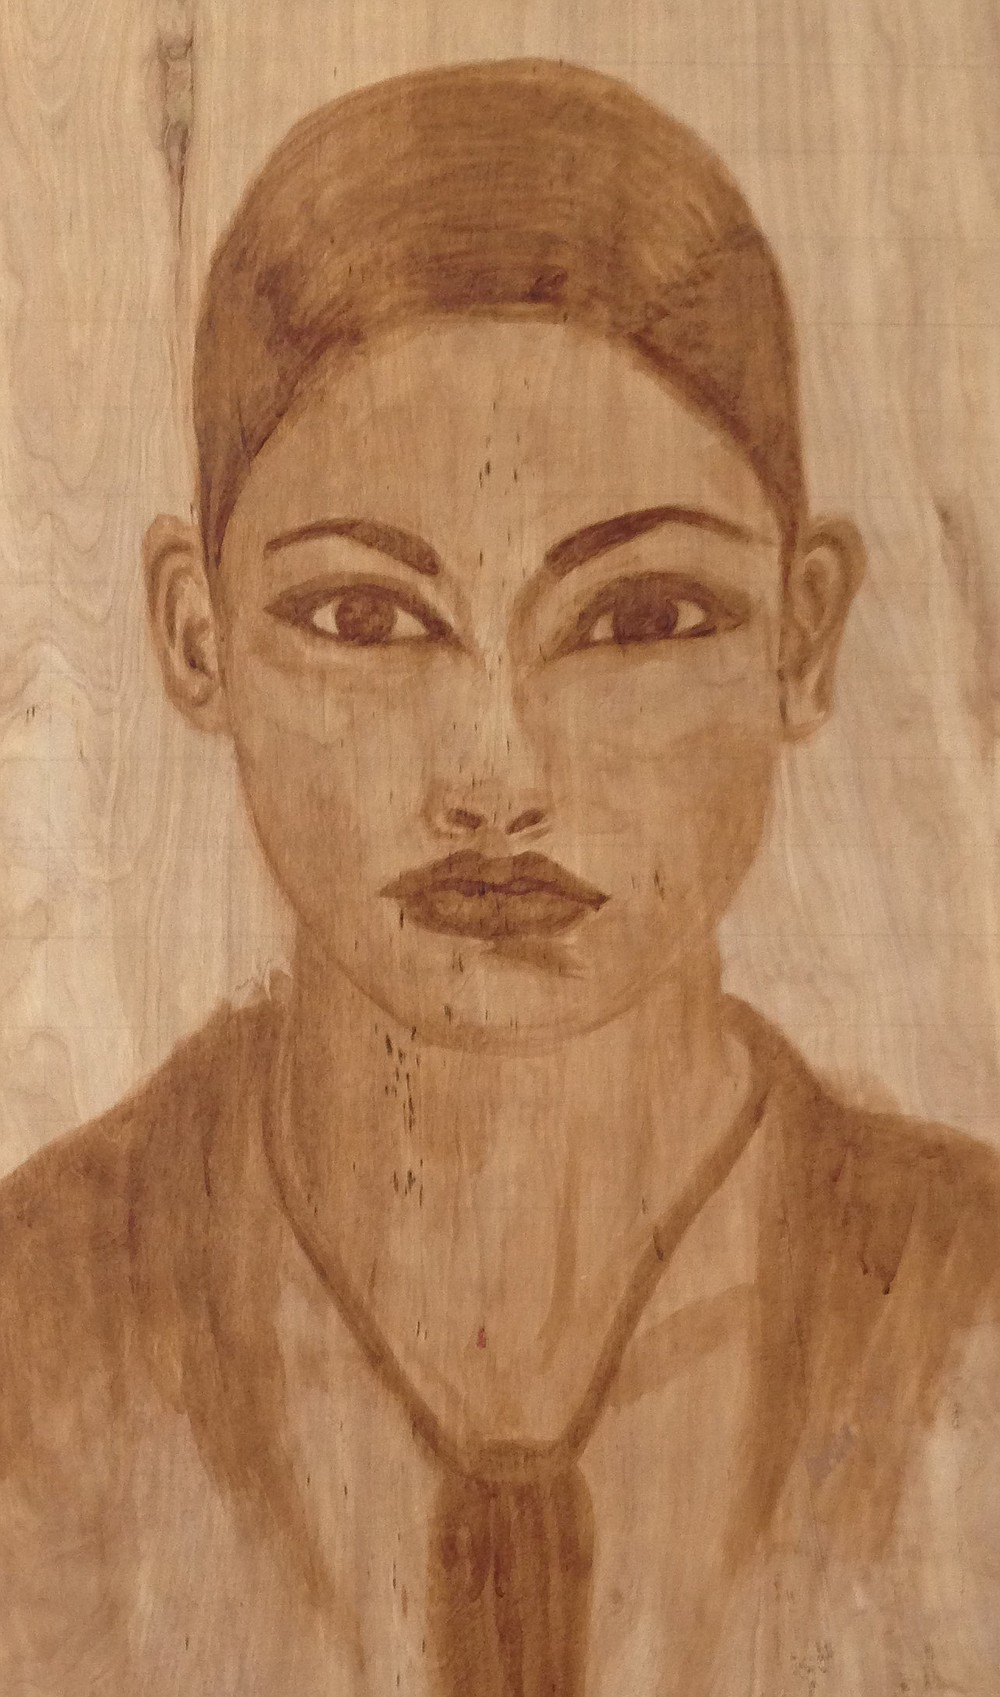 A coffee-painted portrait by Industrial Grind cofounder Barbara Jeanine.